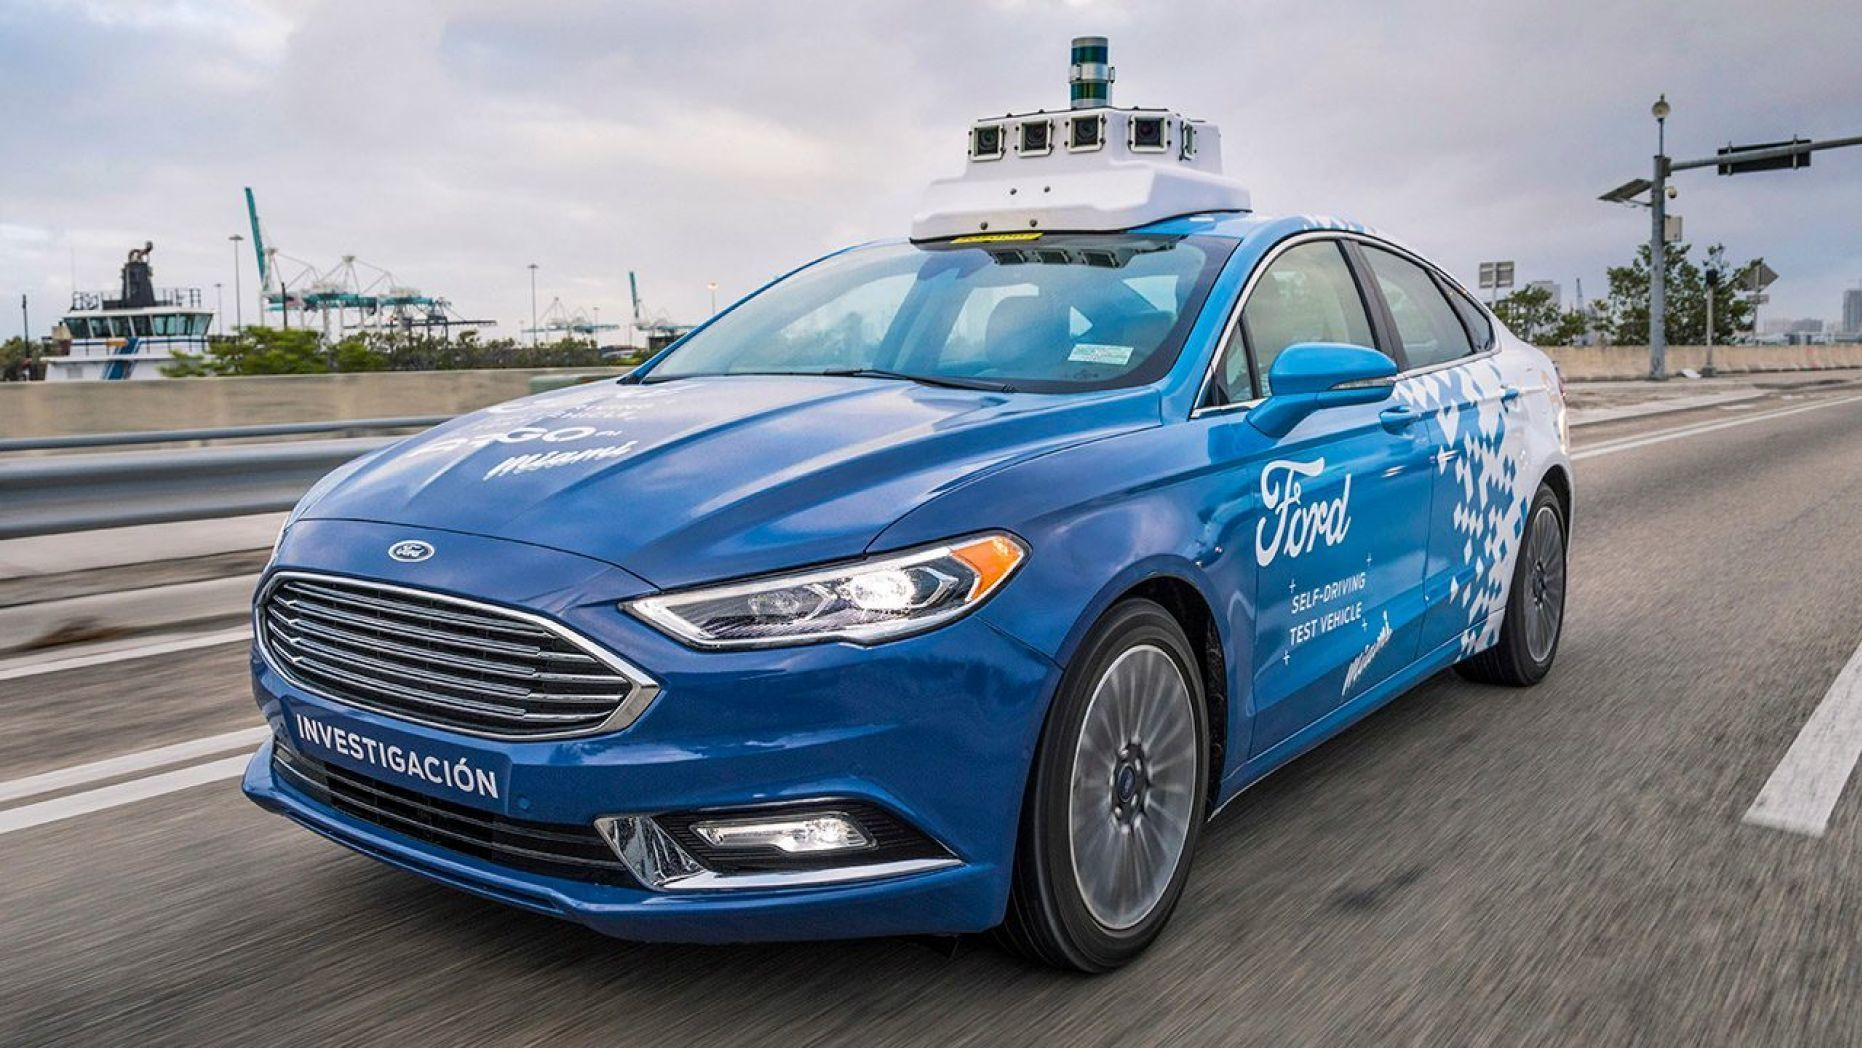 Ford to build electric cars at Mustang plant, autonomous